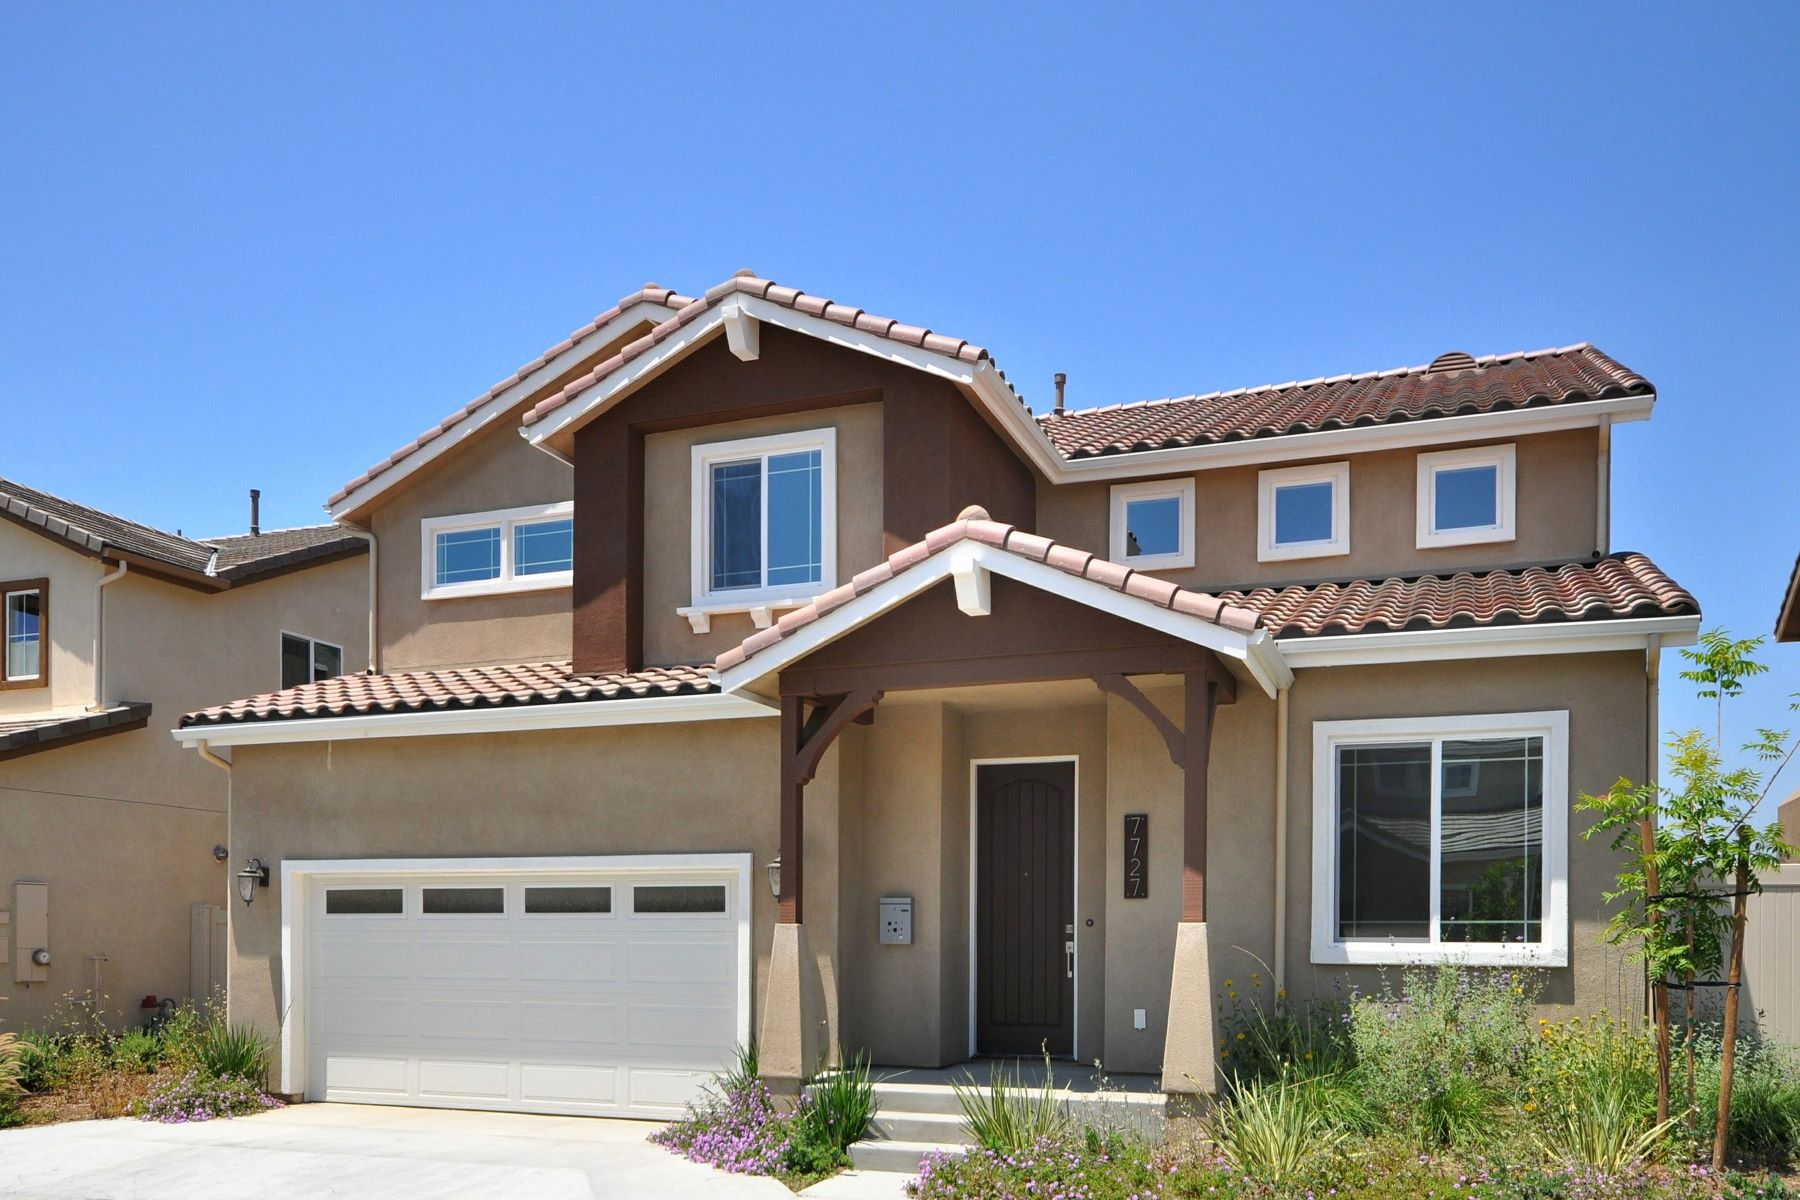 Single Family Home for Sale at 7727 Stagg Lane 7727 Stagg Lane Lot 5 Winnetka, California 91306 United States